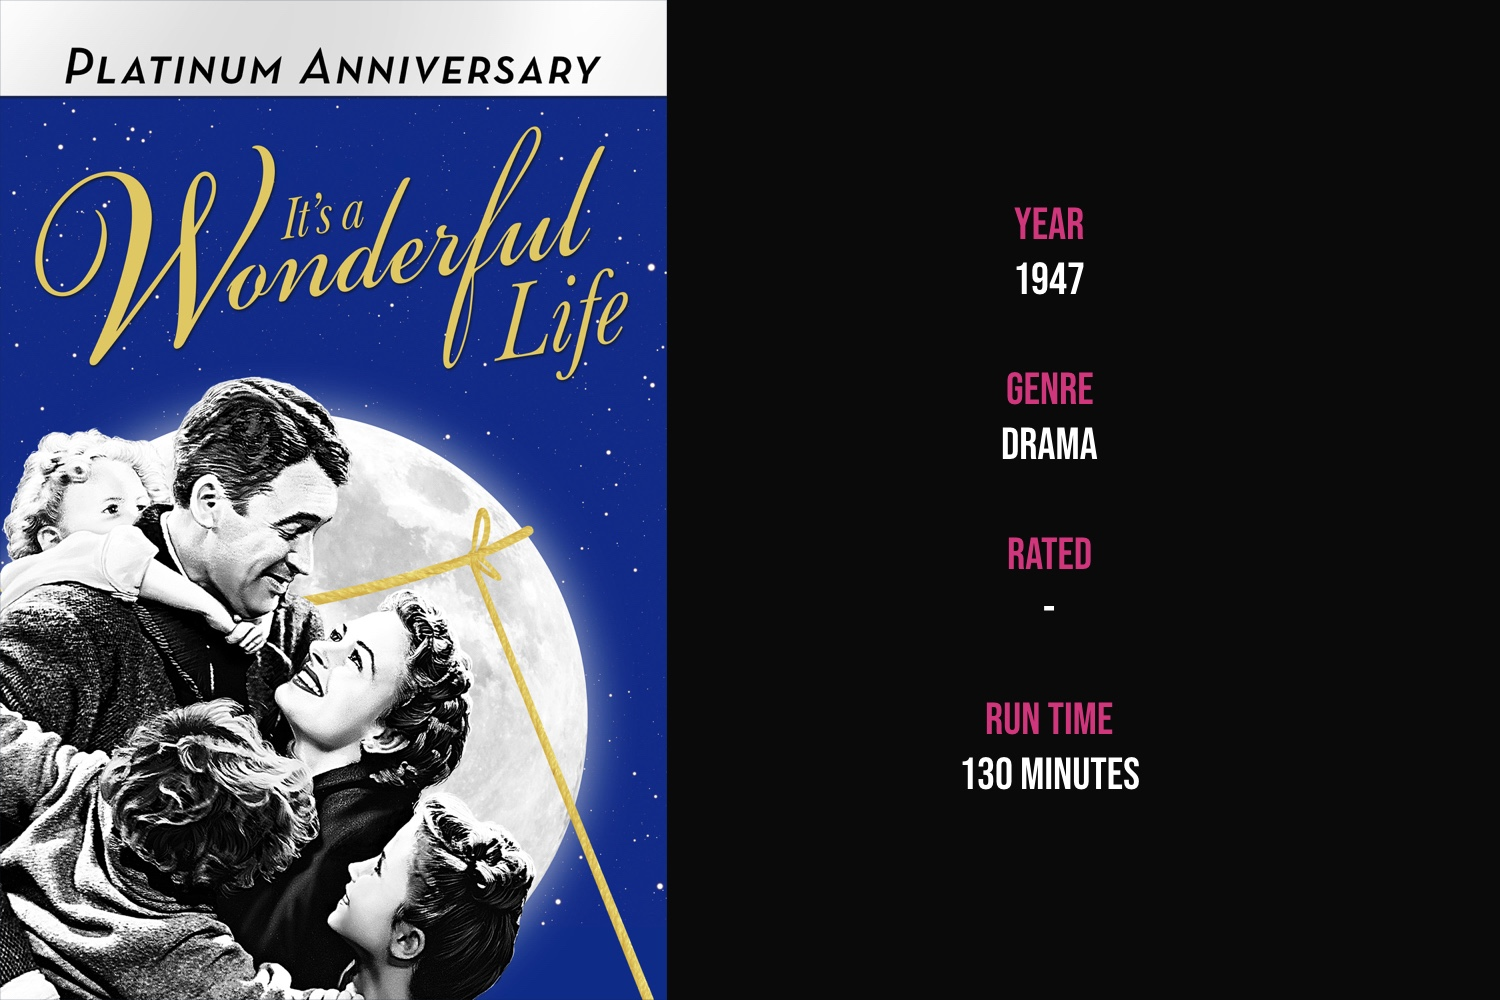 It's a Wonderful Life - An angel tries to convince a frustrated businessman of the good he's brought his town and family by revealing what life would've been like if he'd never existed.iTunes | Amazon